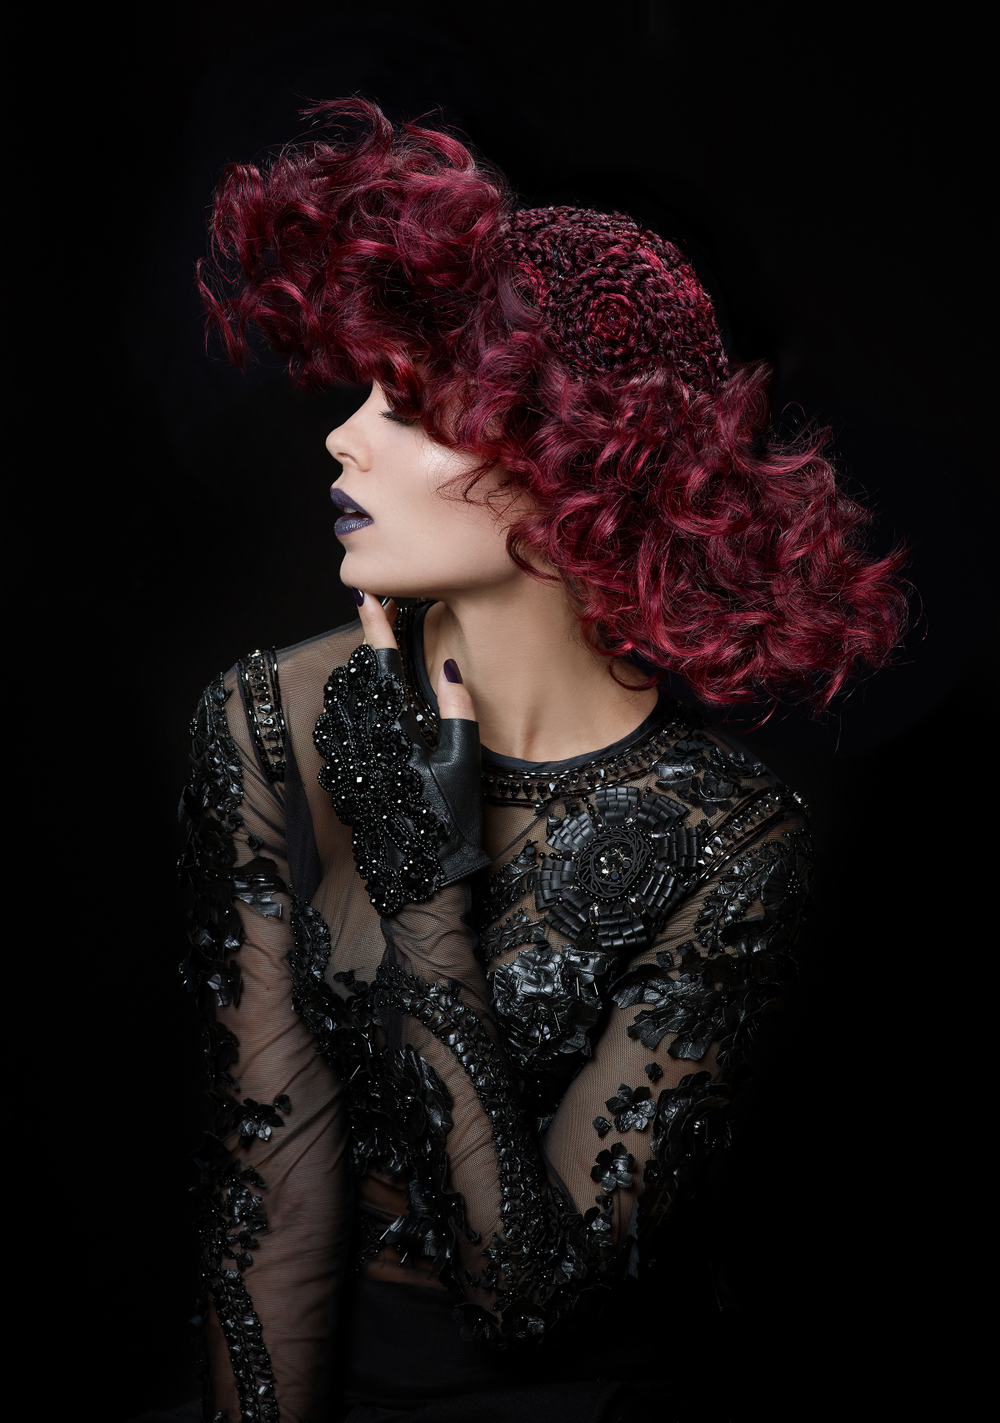 <strong>Dilek Onur Taylor</strong>, Salon by InStyle JCPenney, Chicago, IL